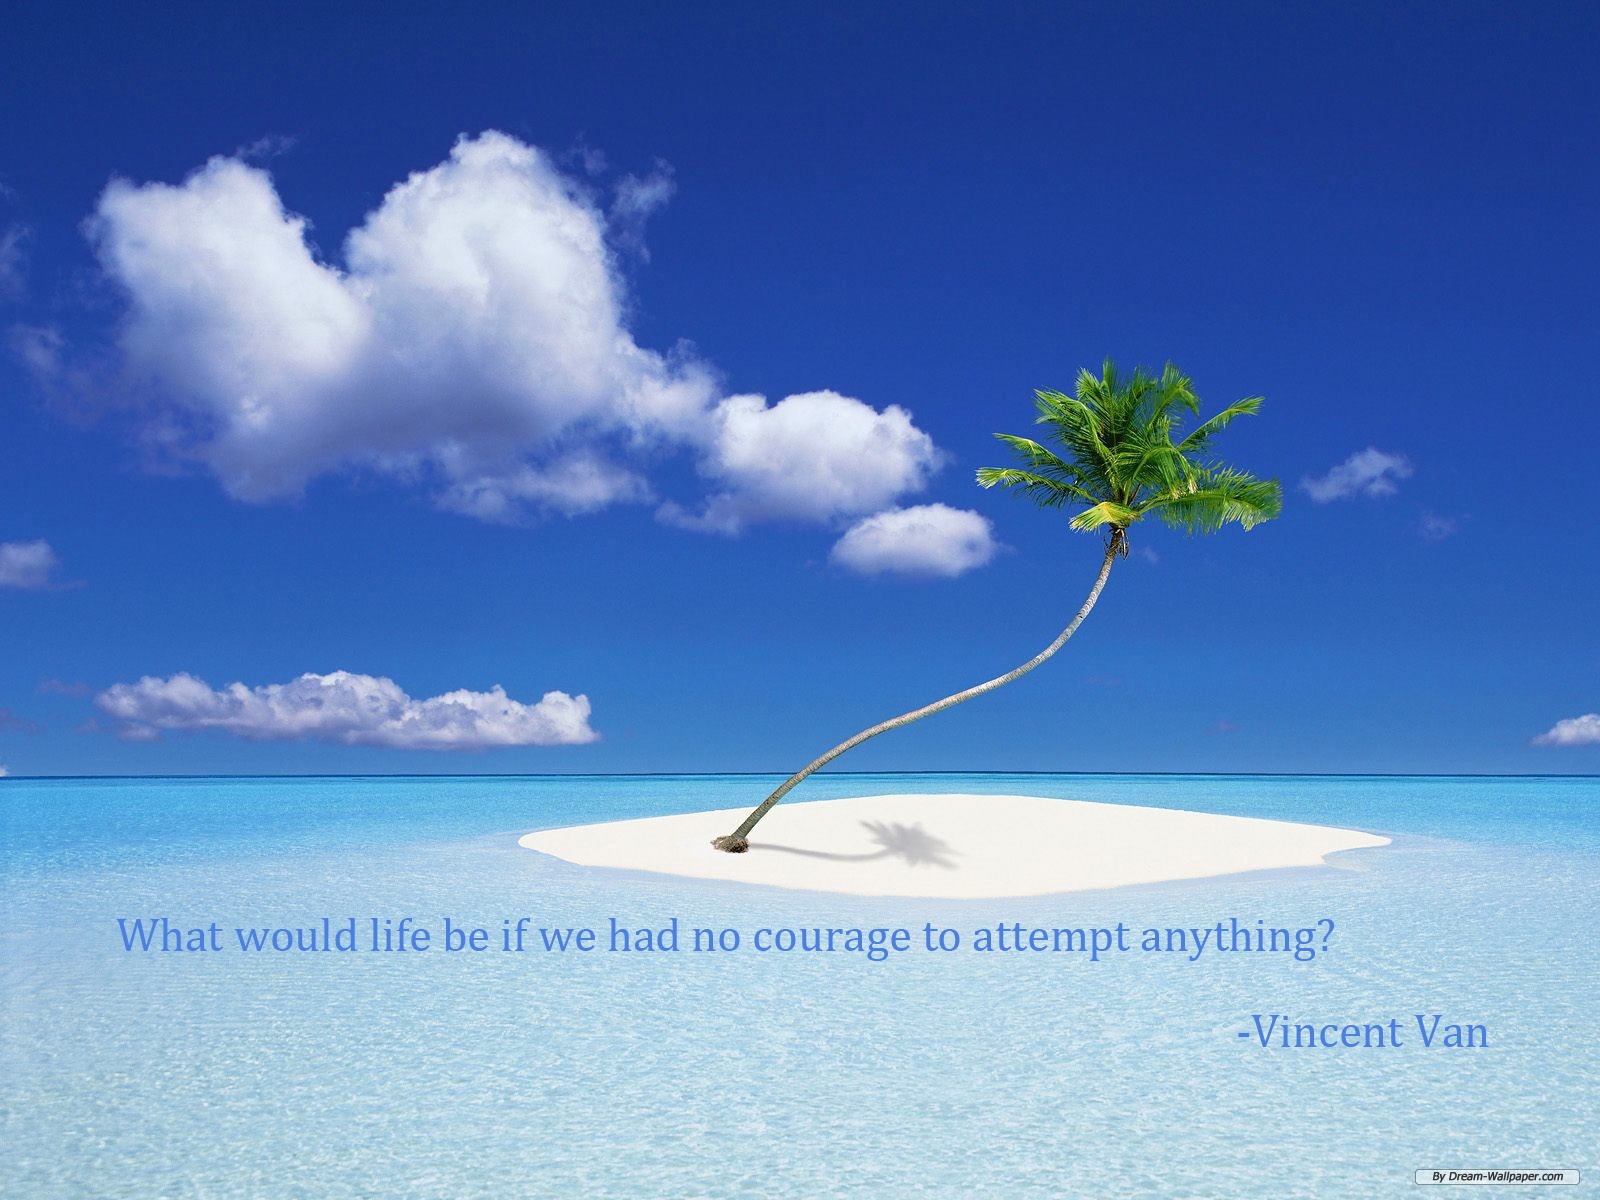 What Would Life Be If We Had No Courage To Attempt Anything